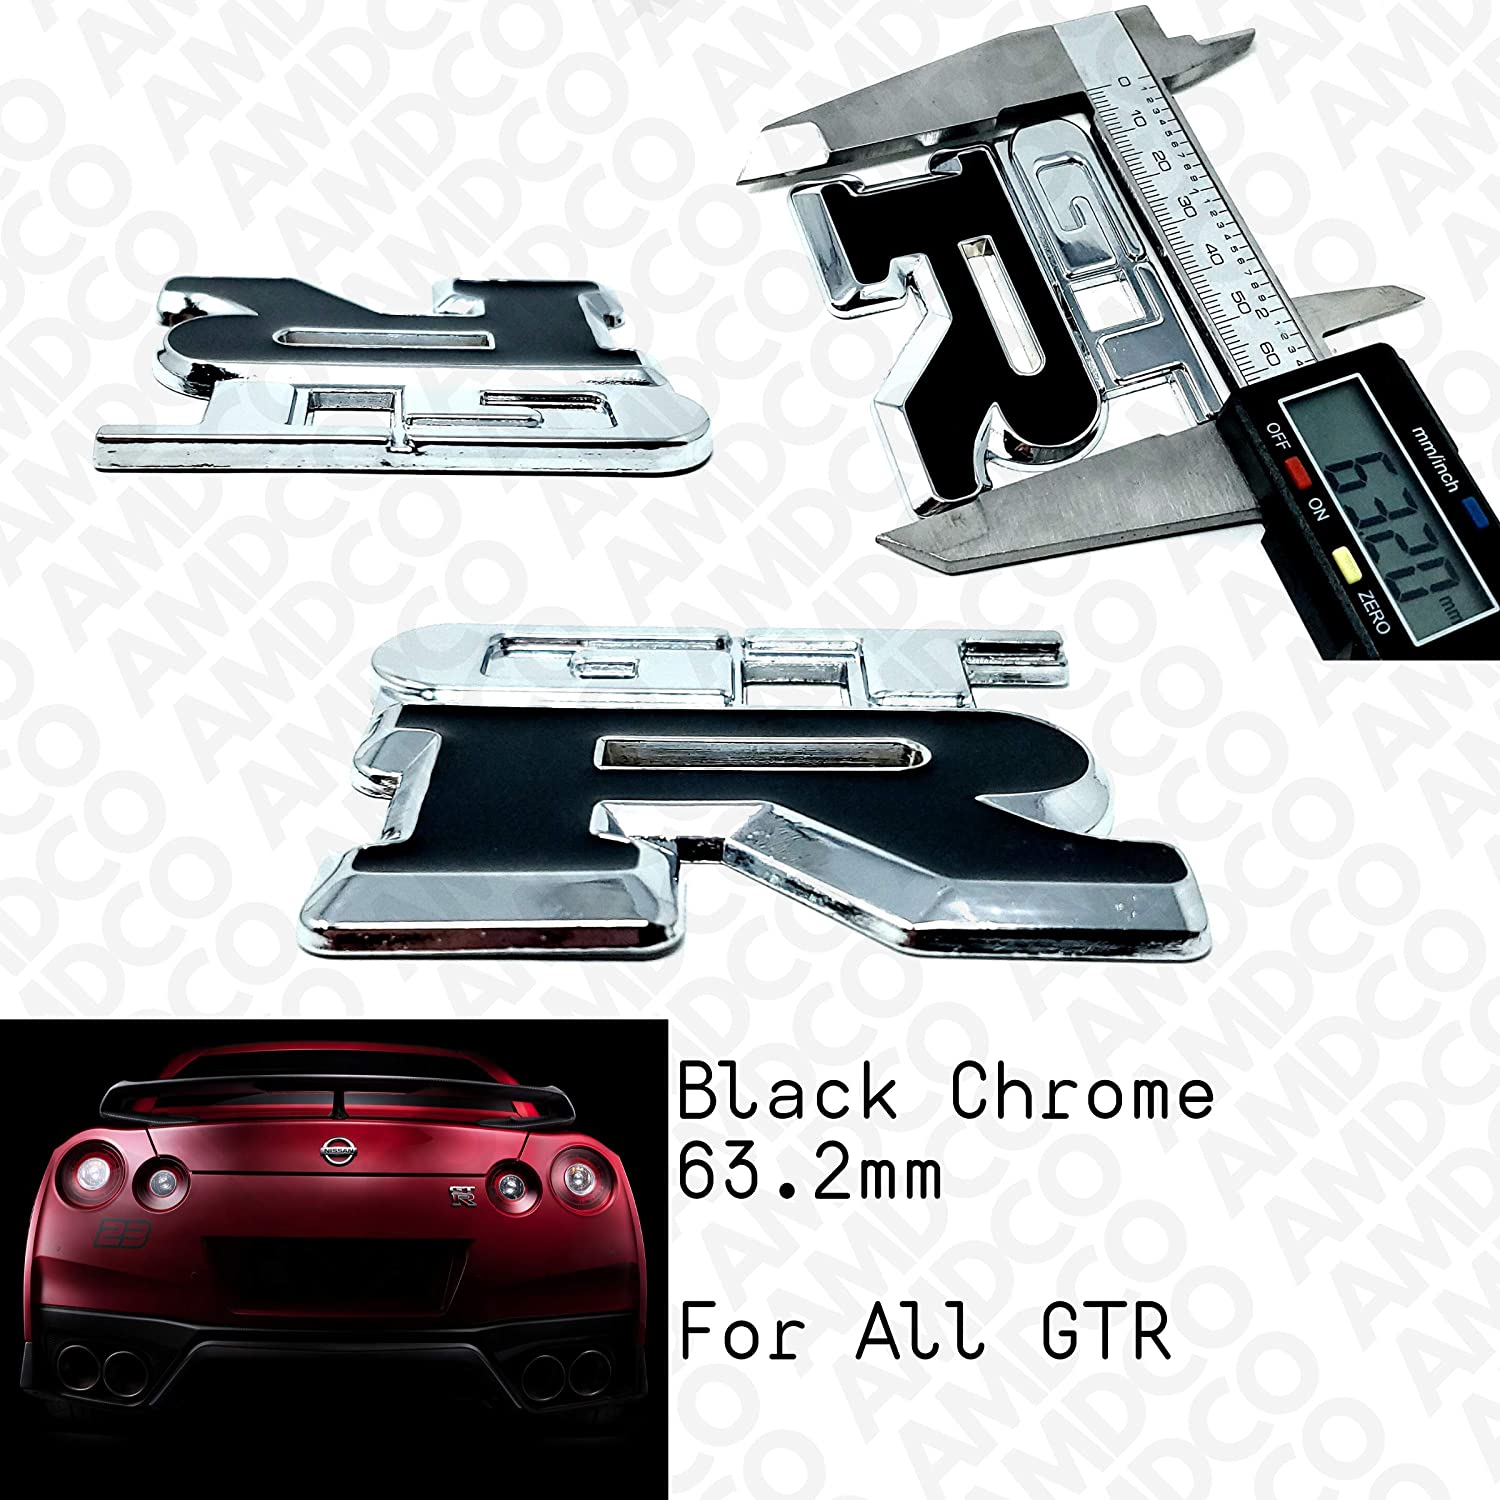 CHROME BLACK REAR GTR BLACK Emblem Badge Stickers Decals with Strong 3M Includes instructions MEASURE Before Purchase Fitment Top Quality fit For GTR pack of 1 AMD